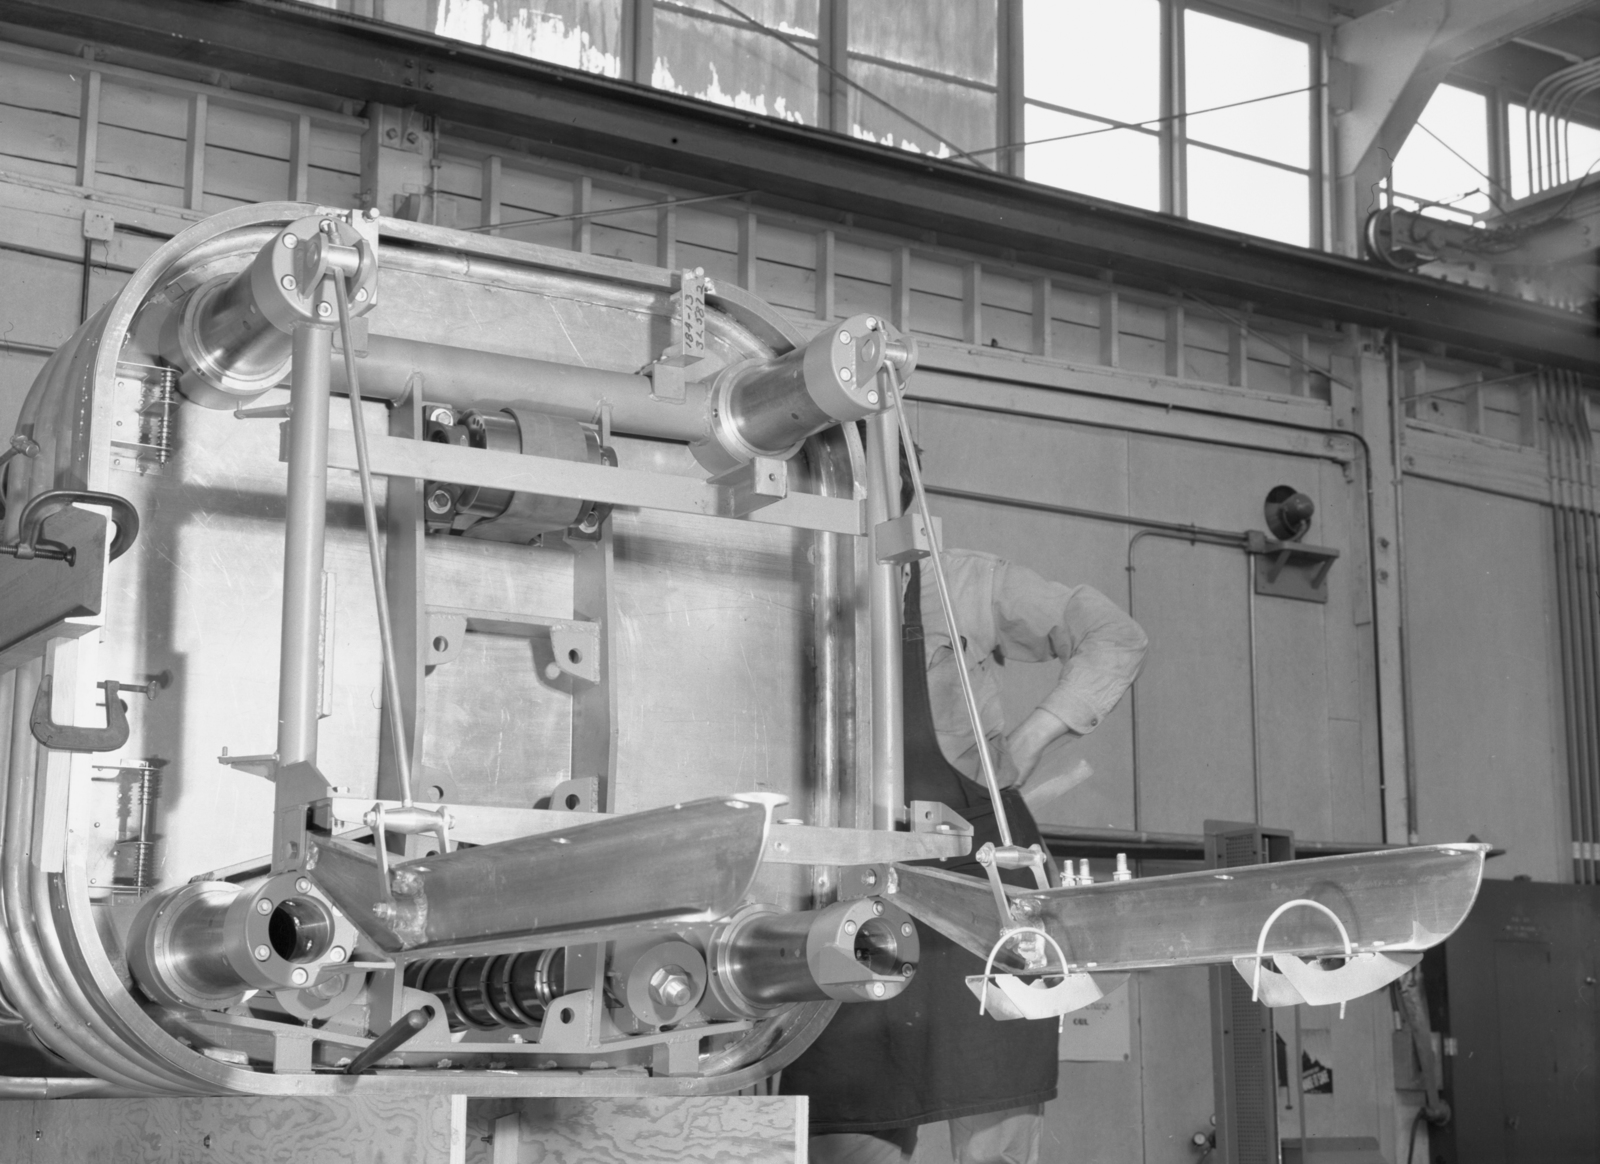 1/4 scale bevatron operating model. Chassis support assembly for injector ion gun. Associated individual: William Brobeck. December 16, 1948. Bevatron Model-96. Model briefly referred to as the Cyclodrome